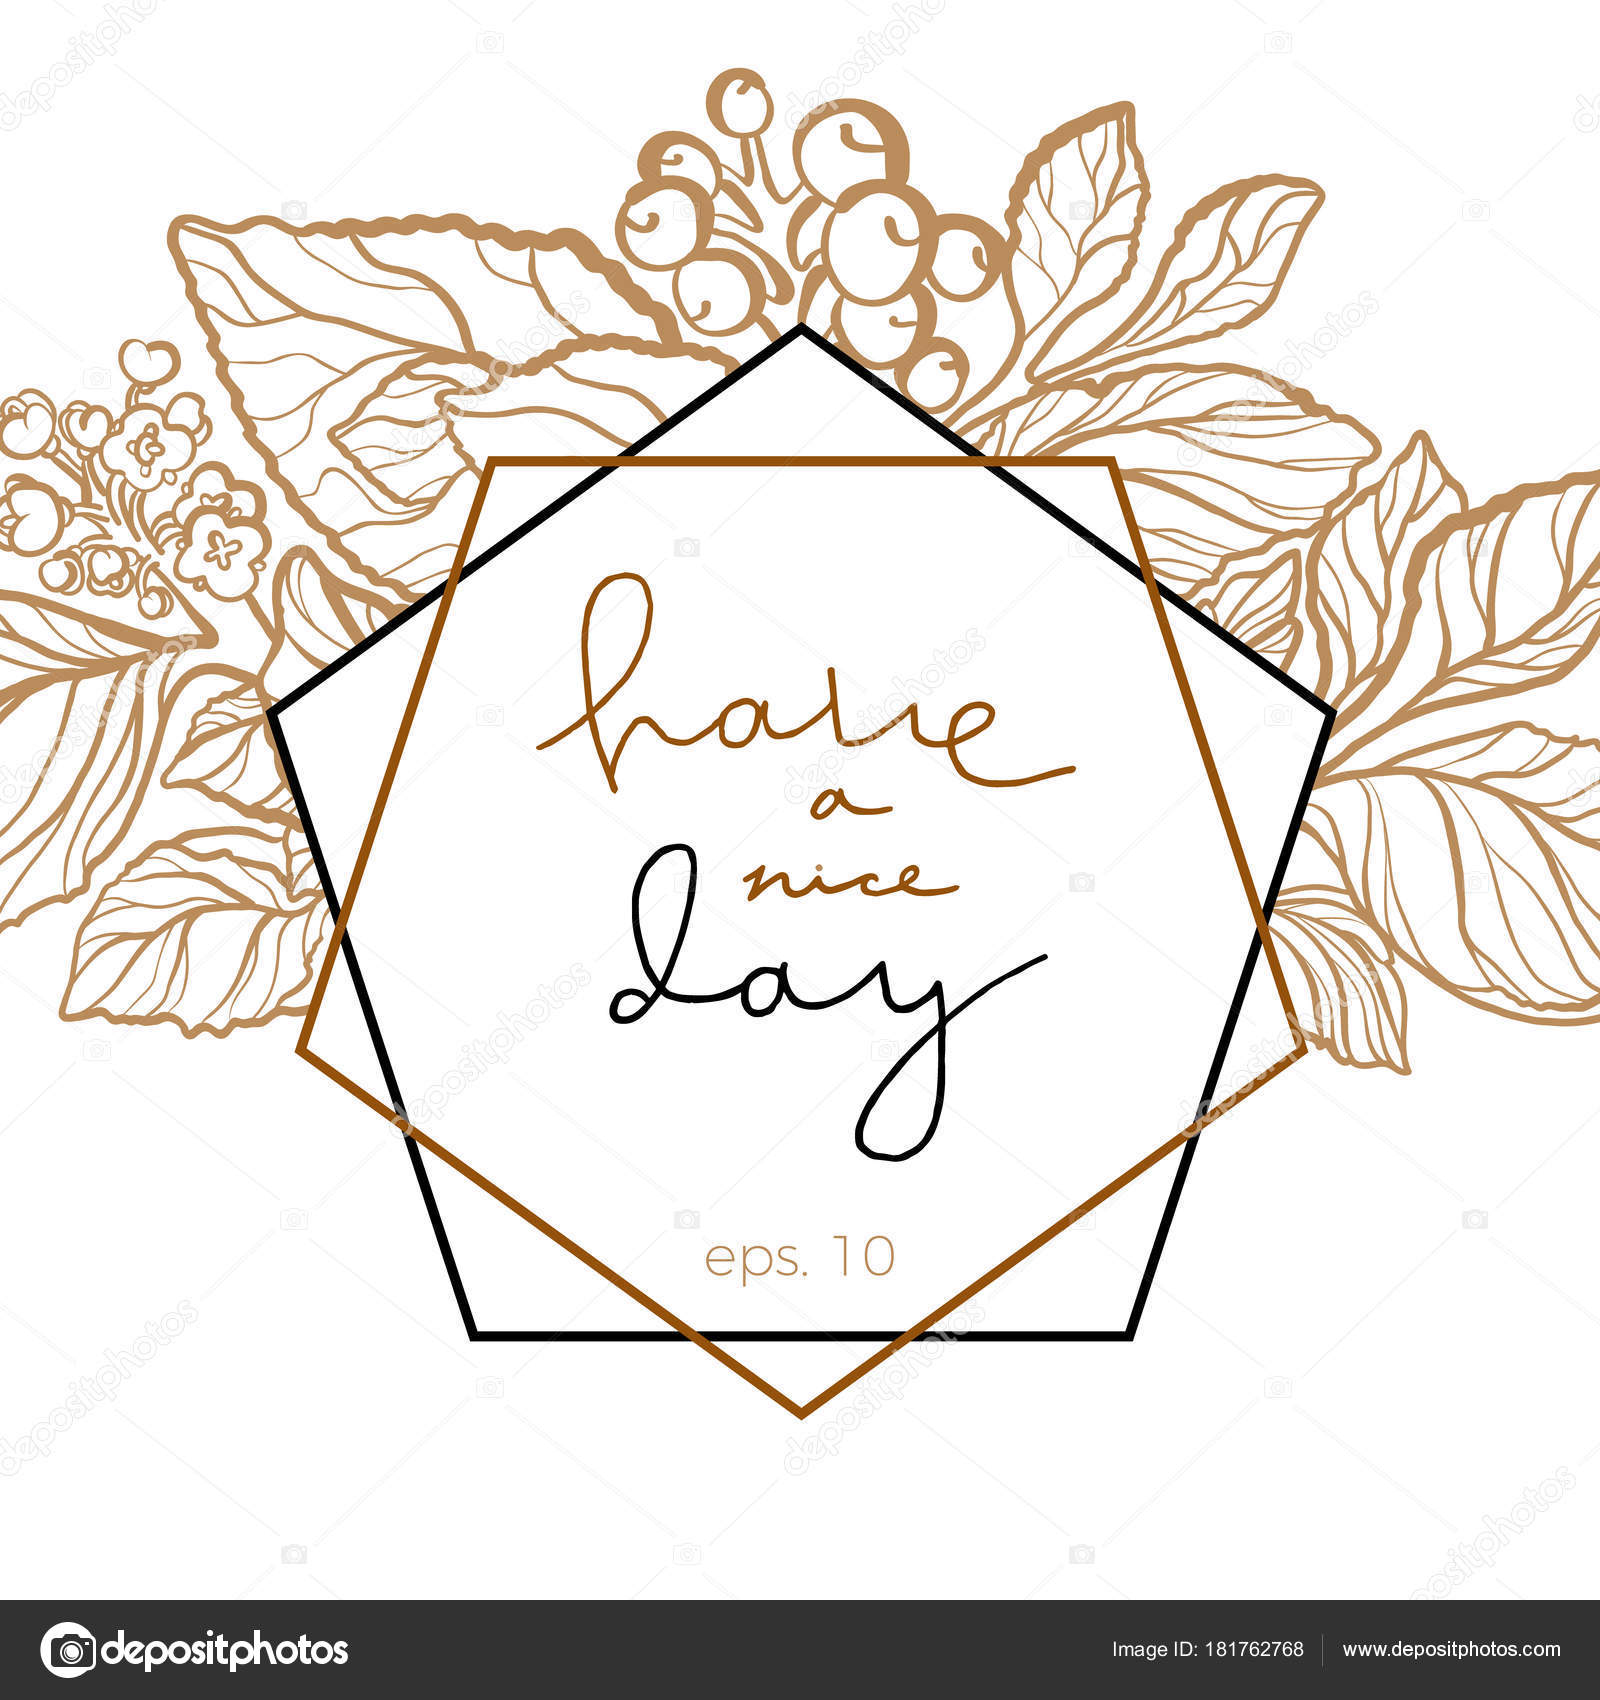 Vector wedding floral invitation with lettering stock vector vector wedding invitation with art line mate branch leaves berries flowers cute card with lettering floral invite template stopboris Images